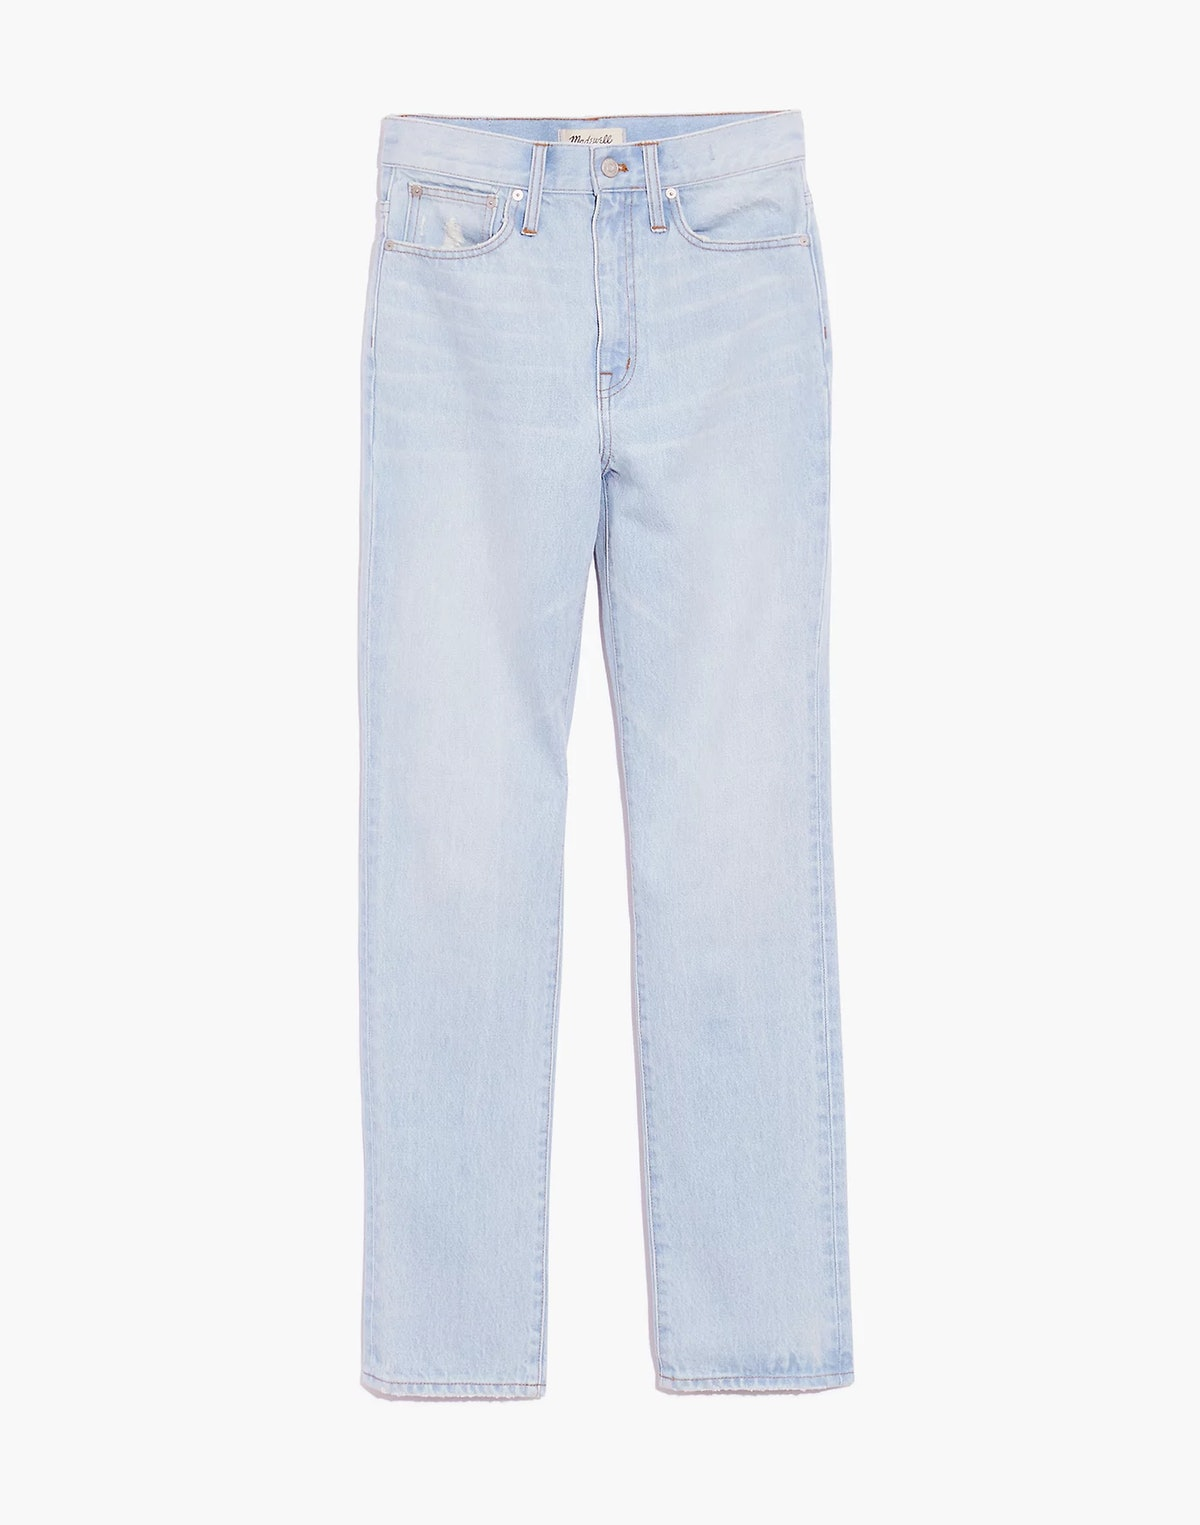 Classic Straight Full-Length Jeans